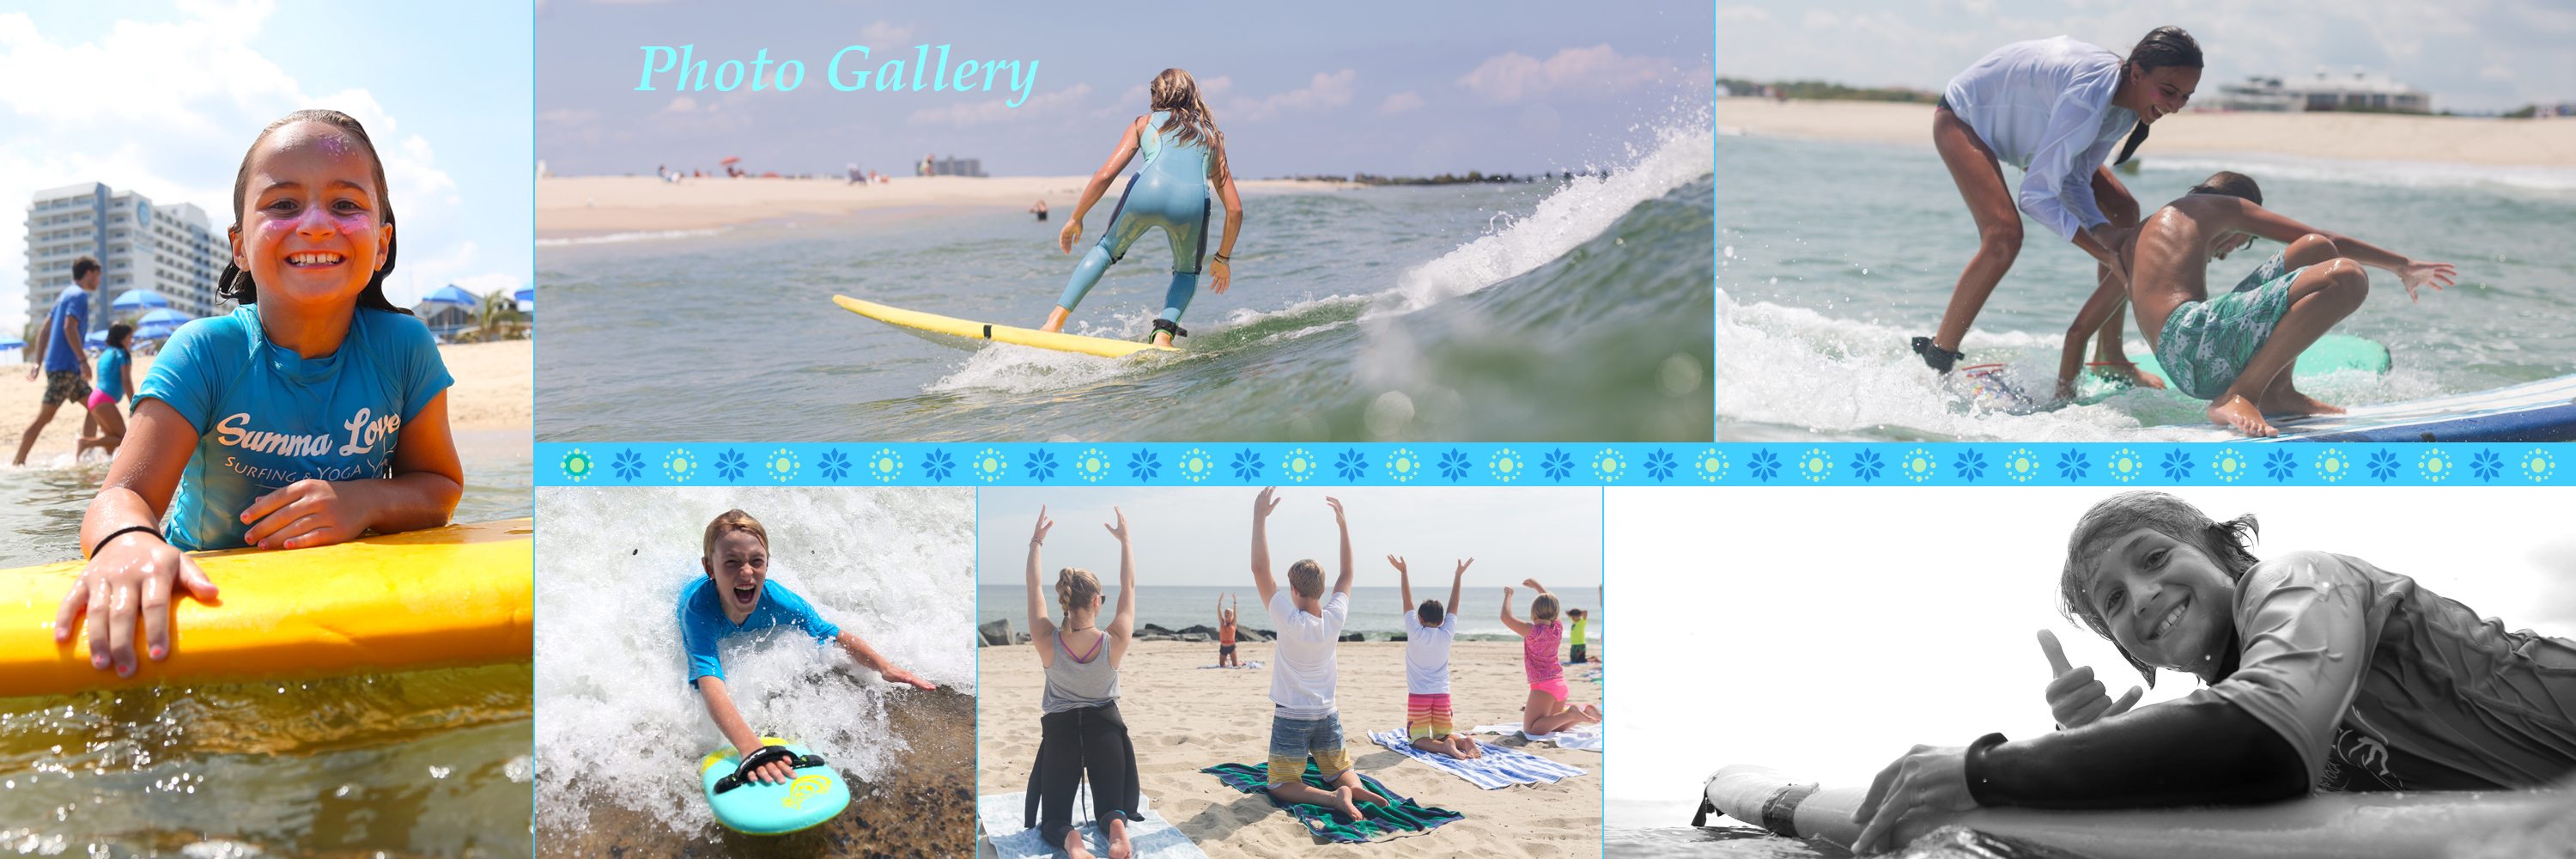 Surf Camp Gallery